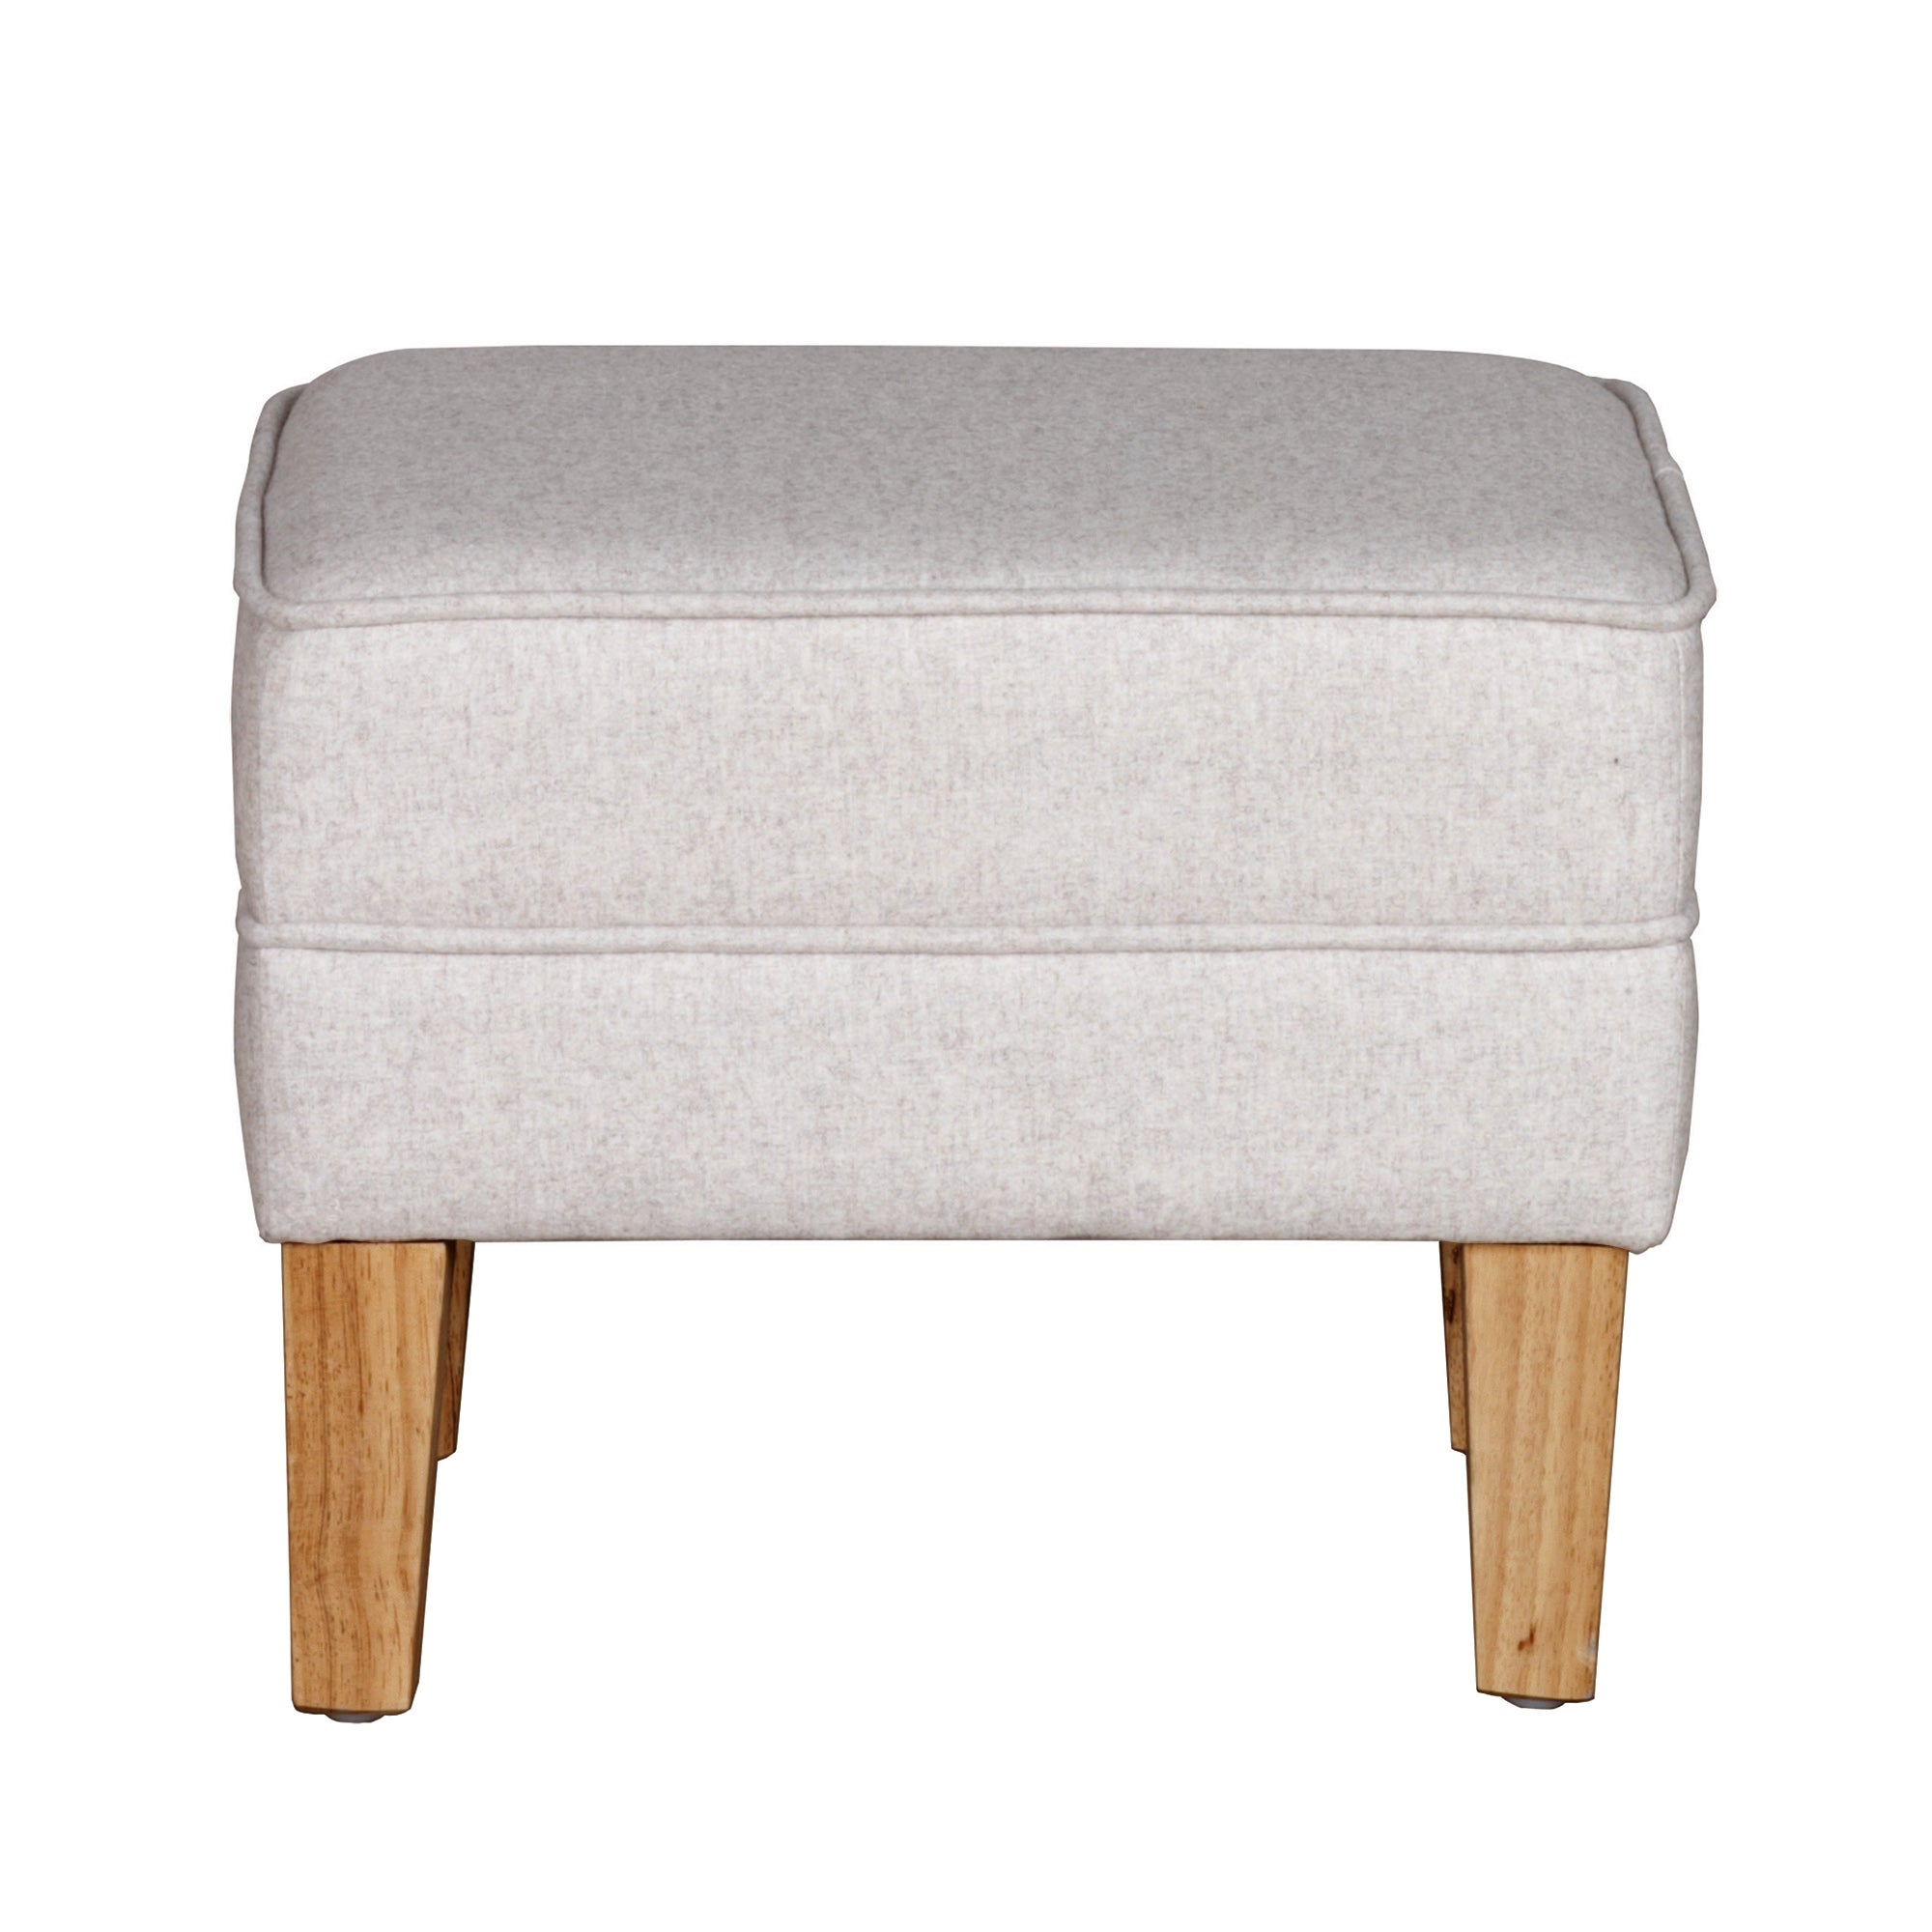 Valencia Natural Textured Weave Footstool